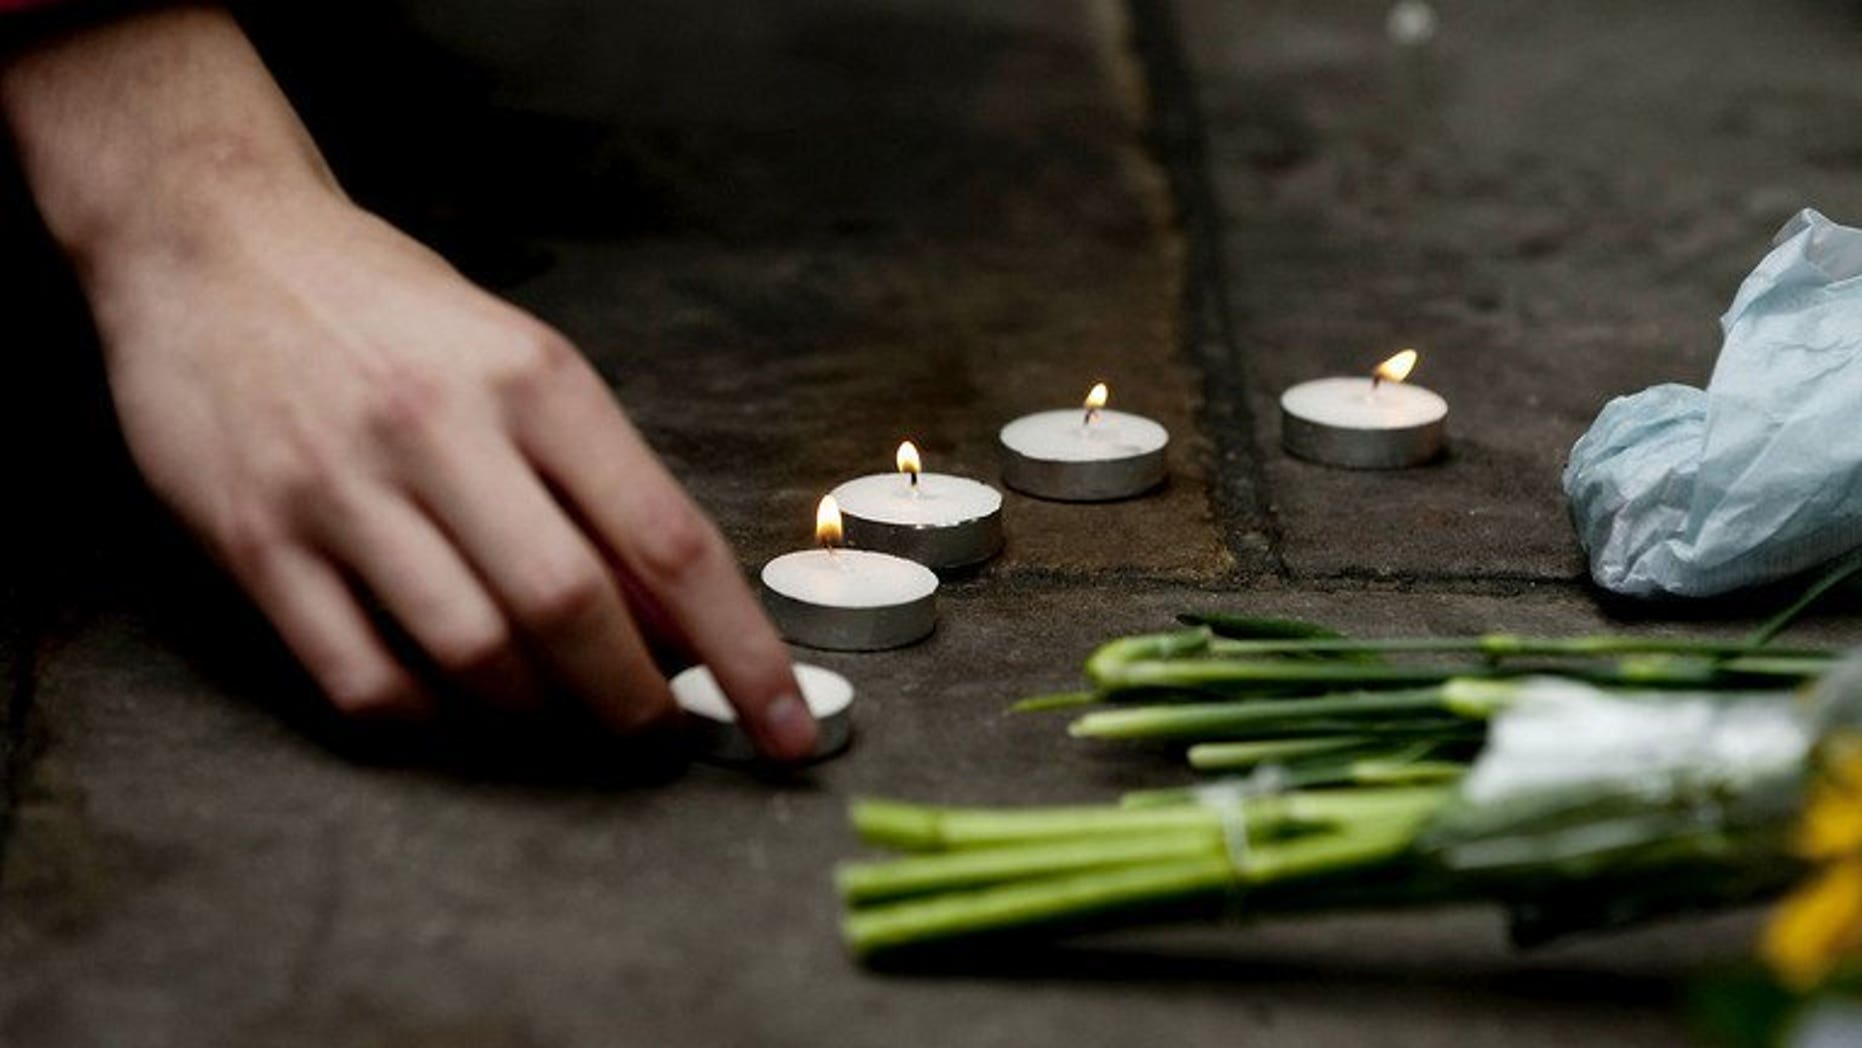 A protester lights a candle at the spot where British newspaper seller Ian Tomlinson died during the G20 demonstrations in London, on April 11, 2009. Metropolitan Police have apologised to Tomlinson's family, who died after being pushed to the ground, and reached an out-of-court setltlement with his family.